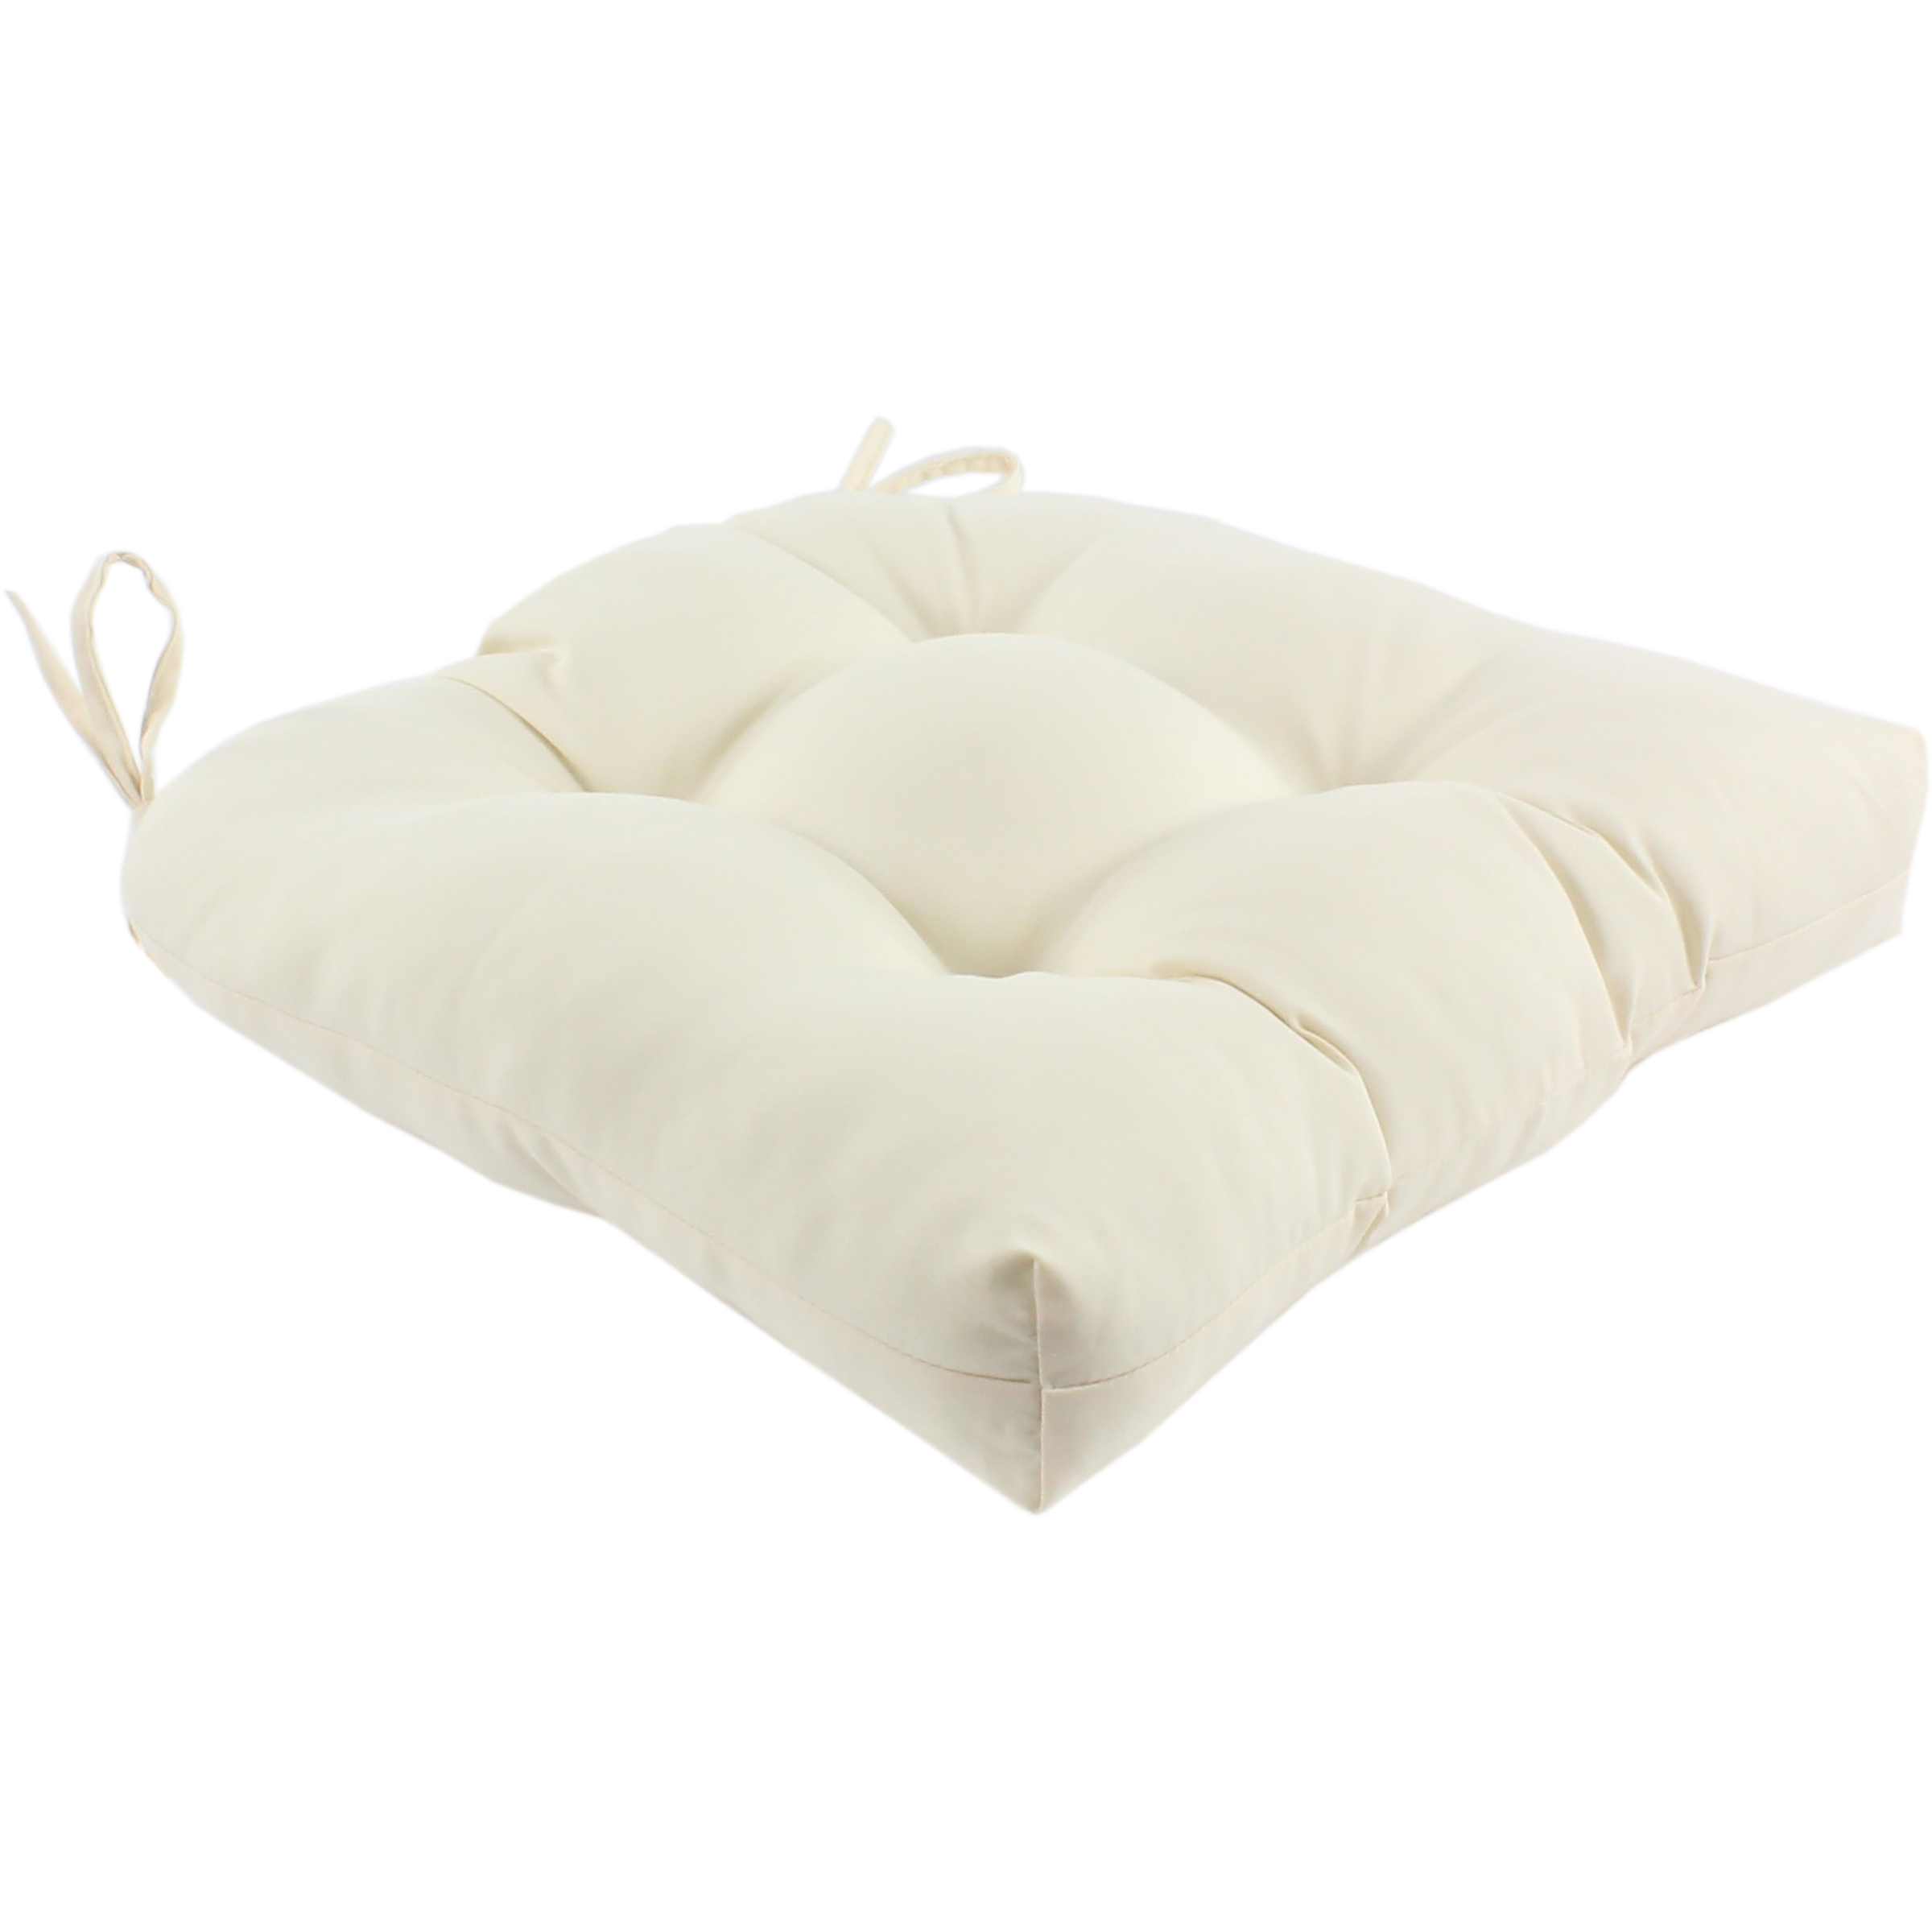 Everythings Comfy Cream Colored Indoor Outdoor Seat Cushion Patio D Cushion 20 X 20 2 Tie Backs Walmart Com Walmart Com